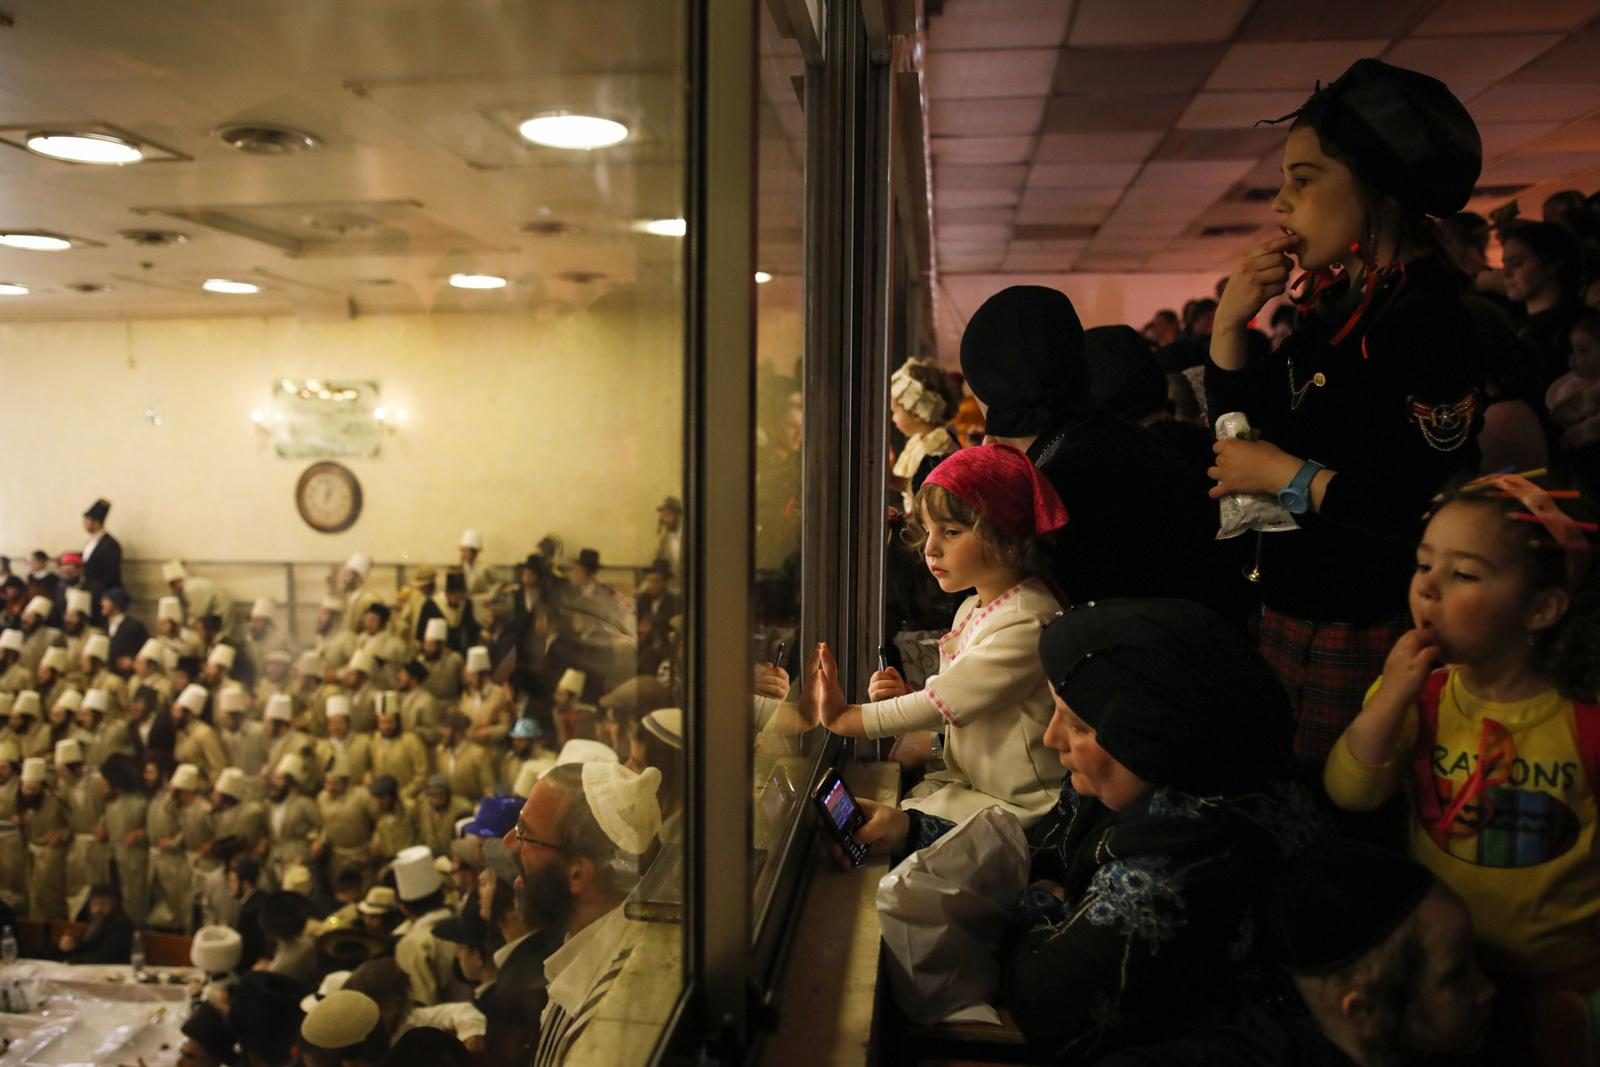 Ultra-Orthodox women and girls are seen in the women's section of a synagogue during the Jewish holiday of Purim in the ultra-orthodox neighbourhood Mea Shearim, Jerusalem, March 22, 2019. The Jewish holiday of Purim commemorates the Jews' salvation from genocide in ancient Persia, as recounted in the Book of Esther